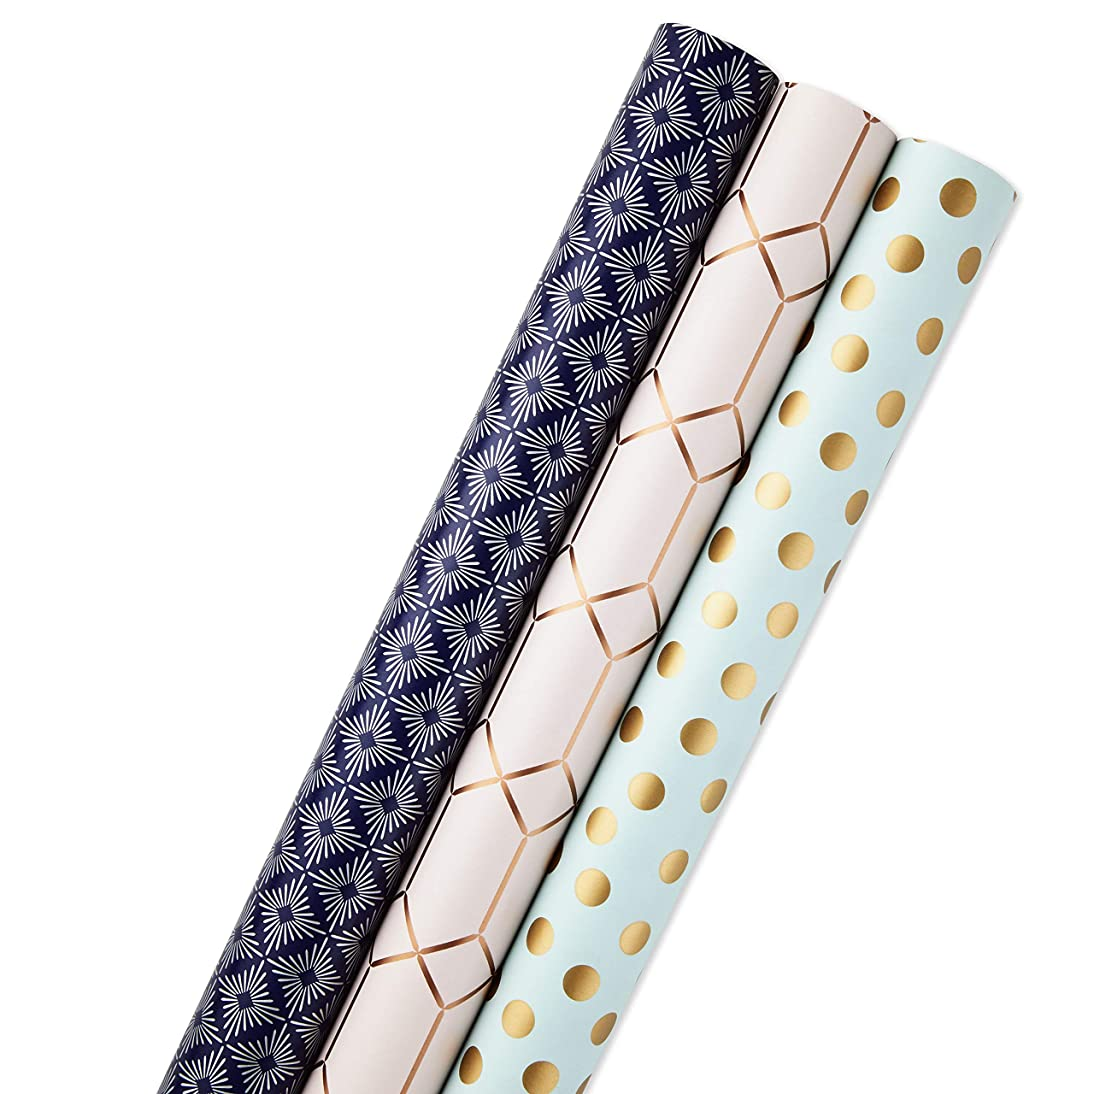 Hallmark All Occasion Reversible Wrapping Paper for Birthdays, Bridal Showers, Baby Showers, Mothers Day, and More (Modern Metallics, Pack of 3, 120 sq. ft. ttl.)